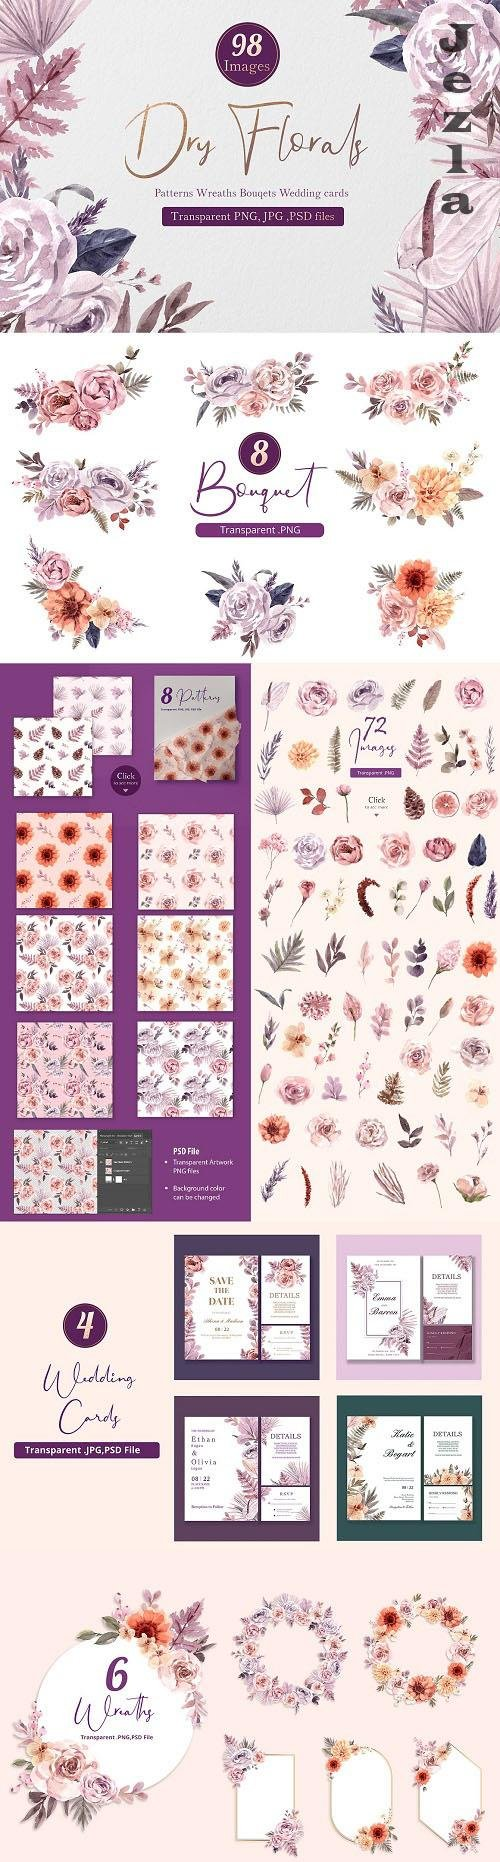 Dry Florals Illustration Watercolor - 6269121